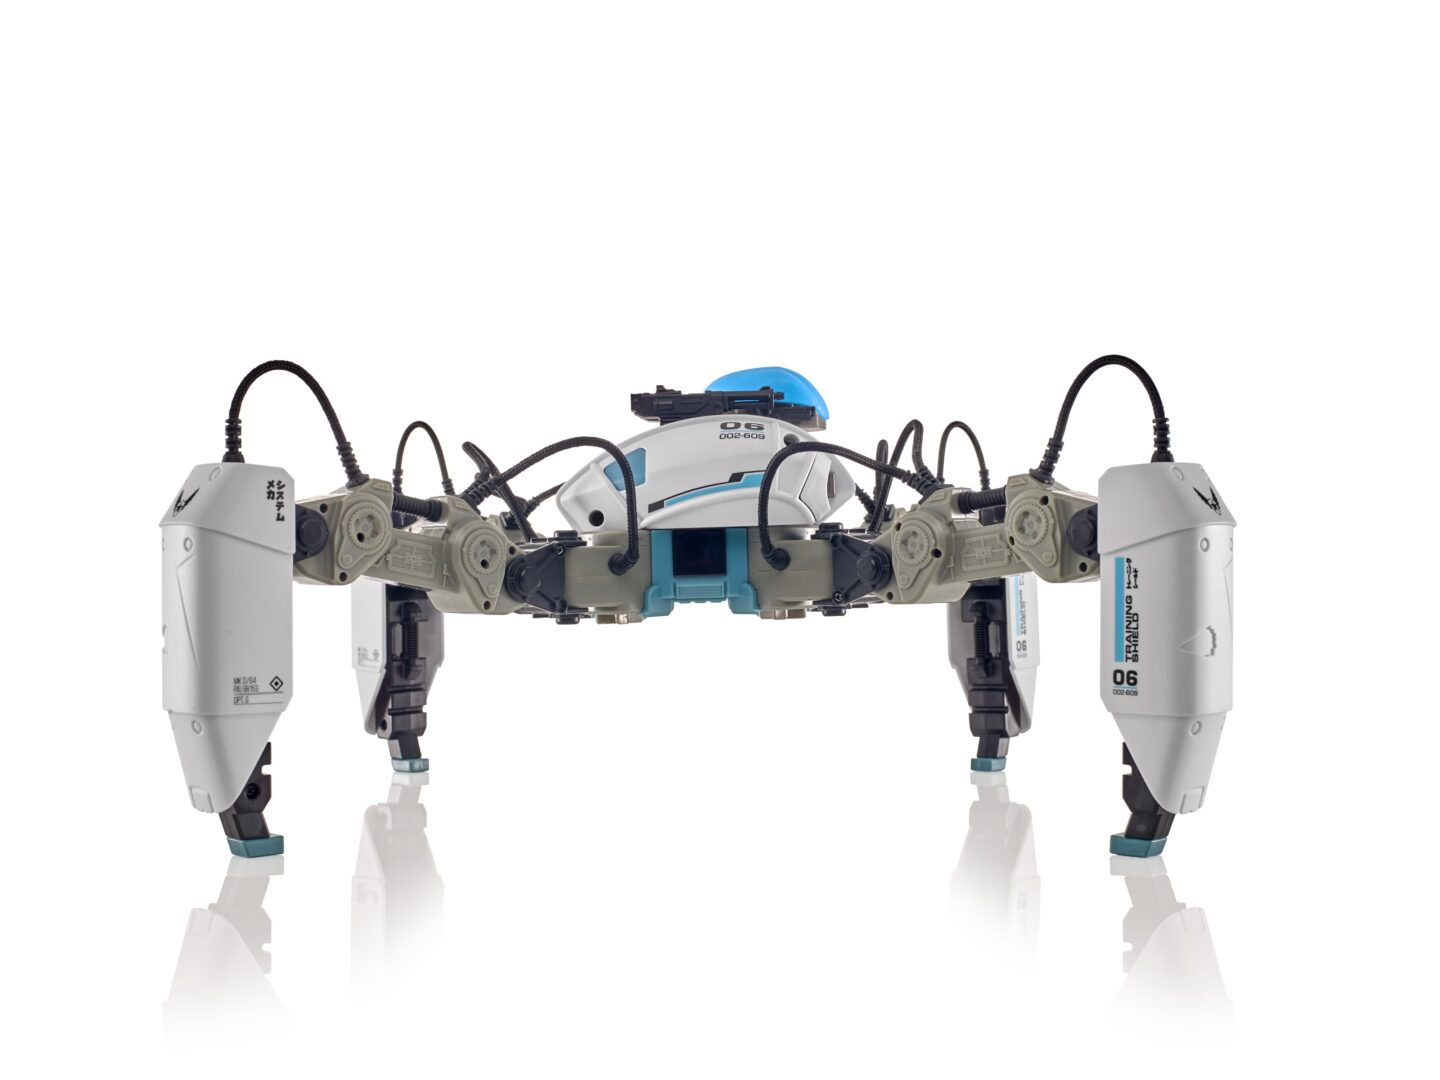 MekaMon AR gaming robot on white background